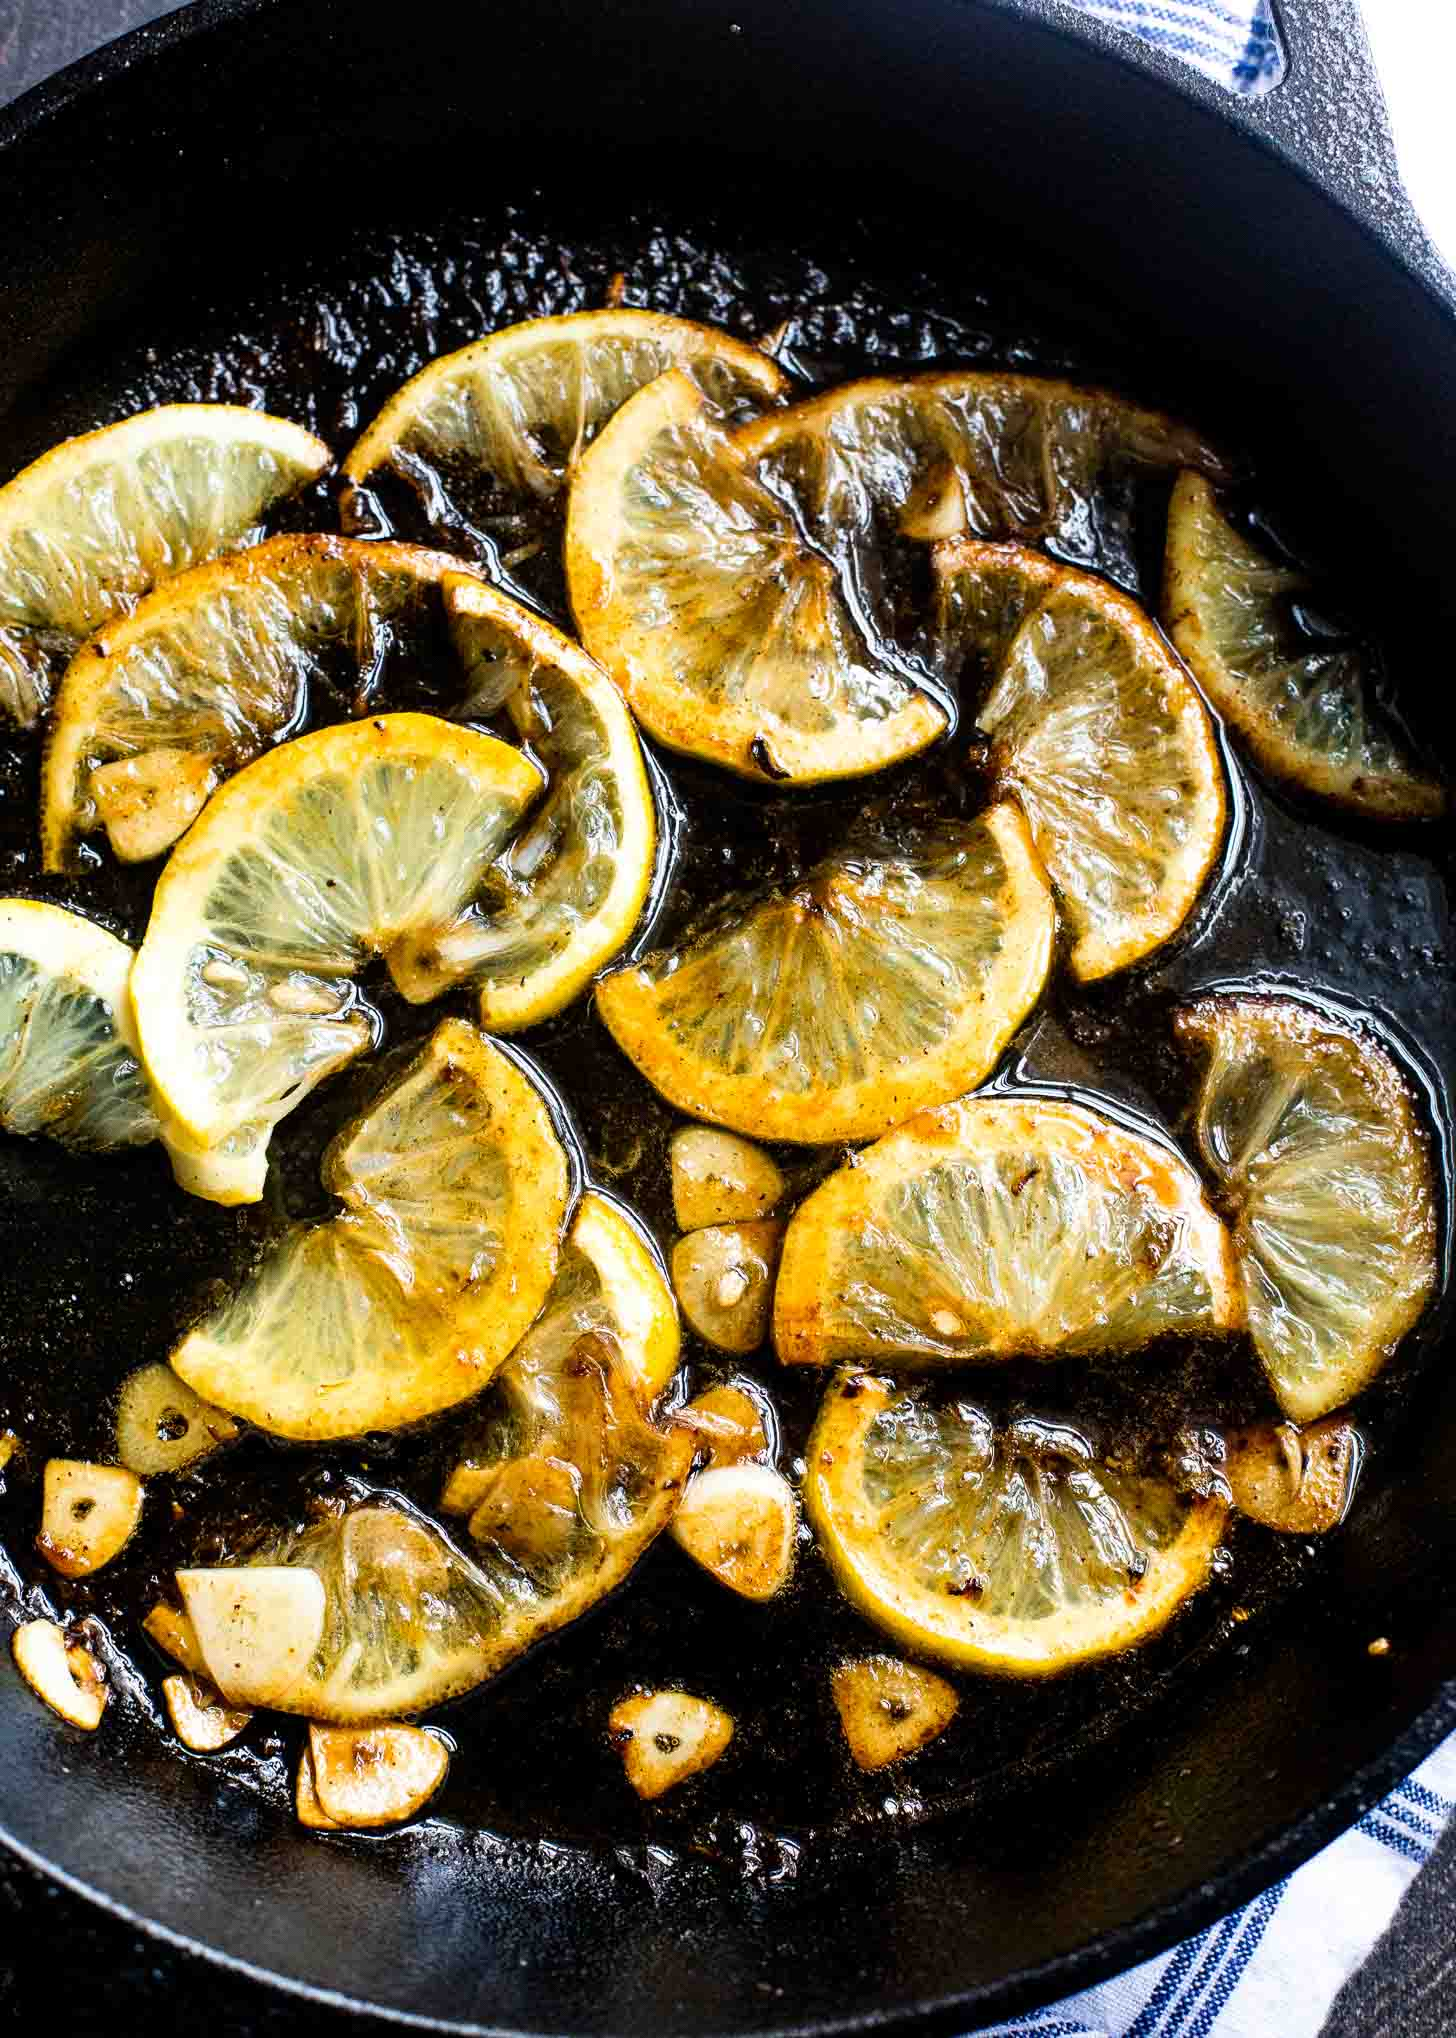 Charred Lemons in a cast iron skillet with sugar and garlic